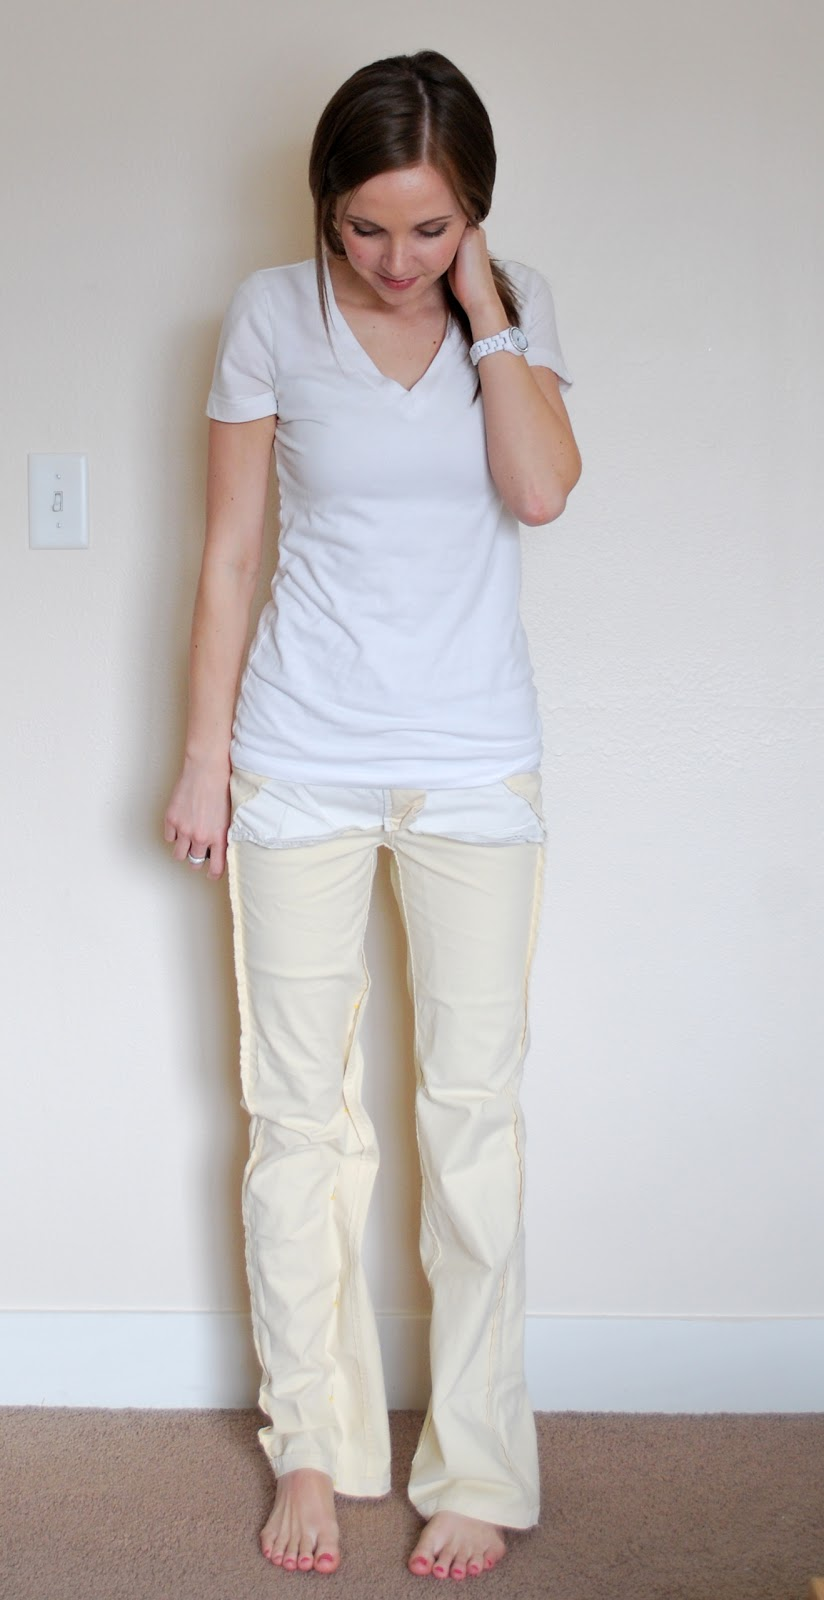 You searched for: wide leg pants! Etsy is the home to thousands of handmade, vintage, and one-of-a-kind products and gifts related to your search. No matter what you're looking for or where you are in the world, our global marketplace of sellers can help you find unique and affordable options. Let's get started!